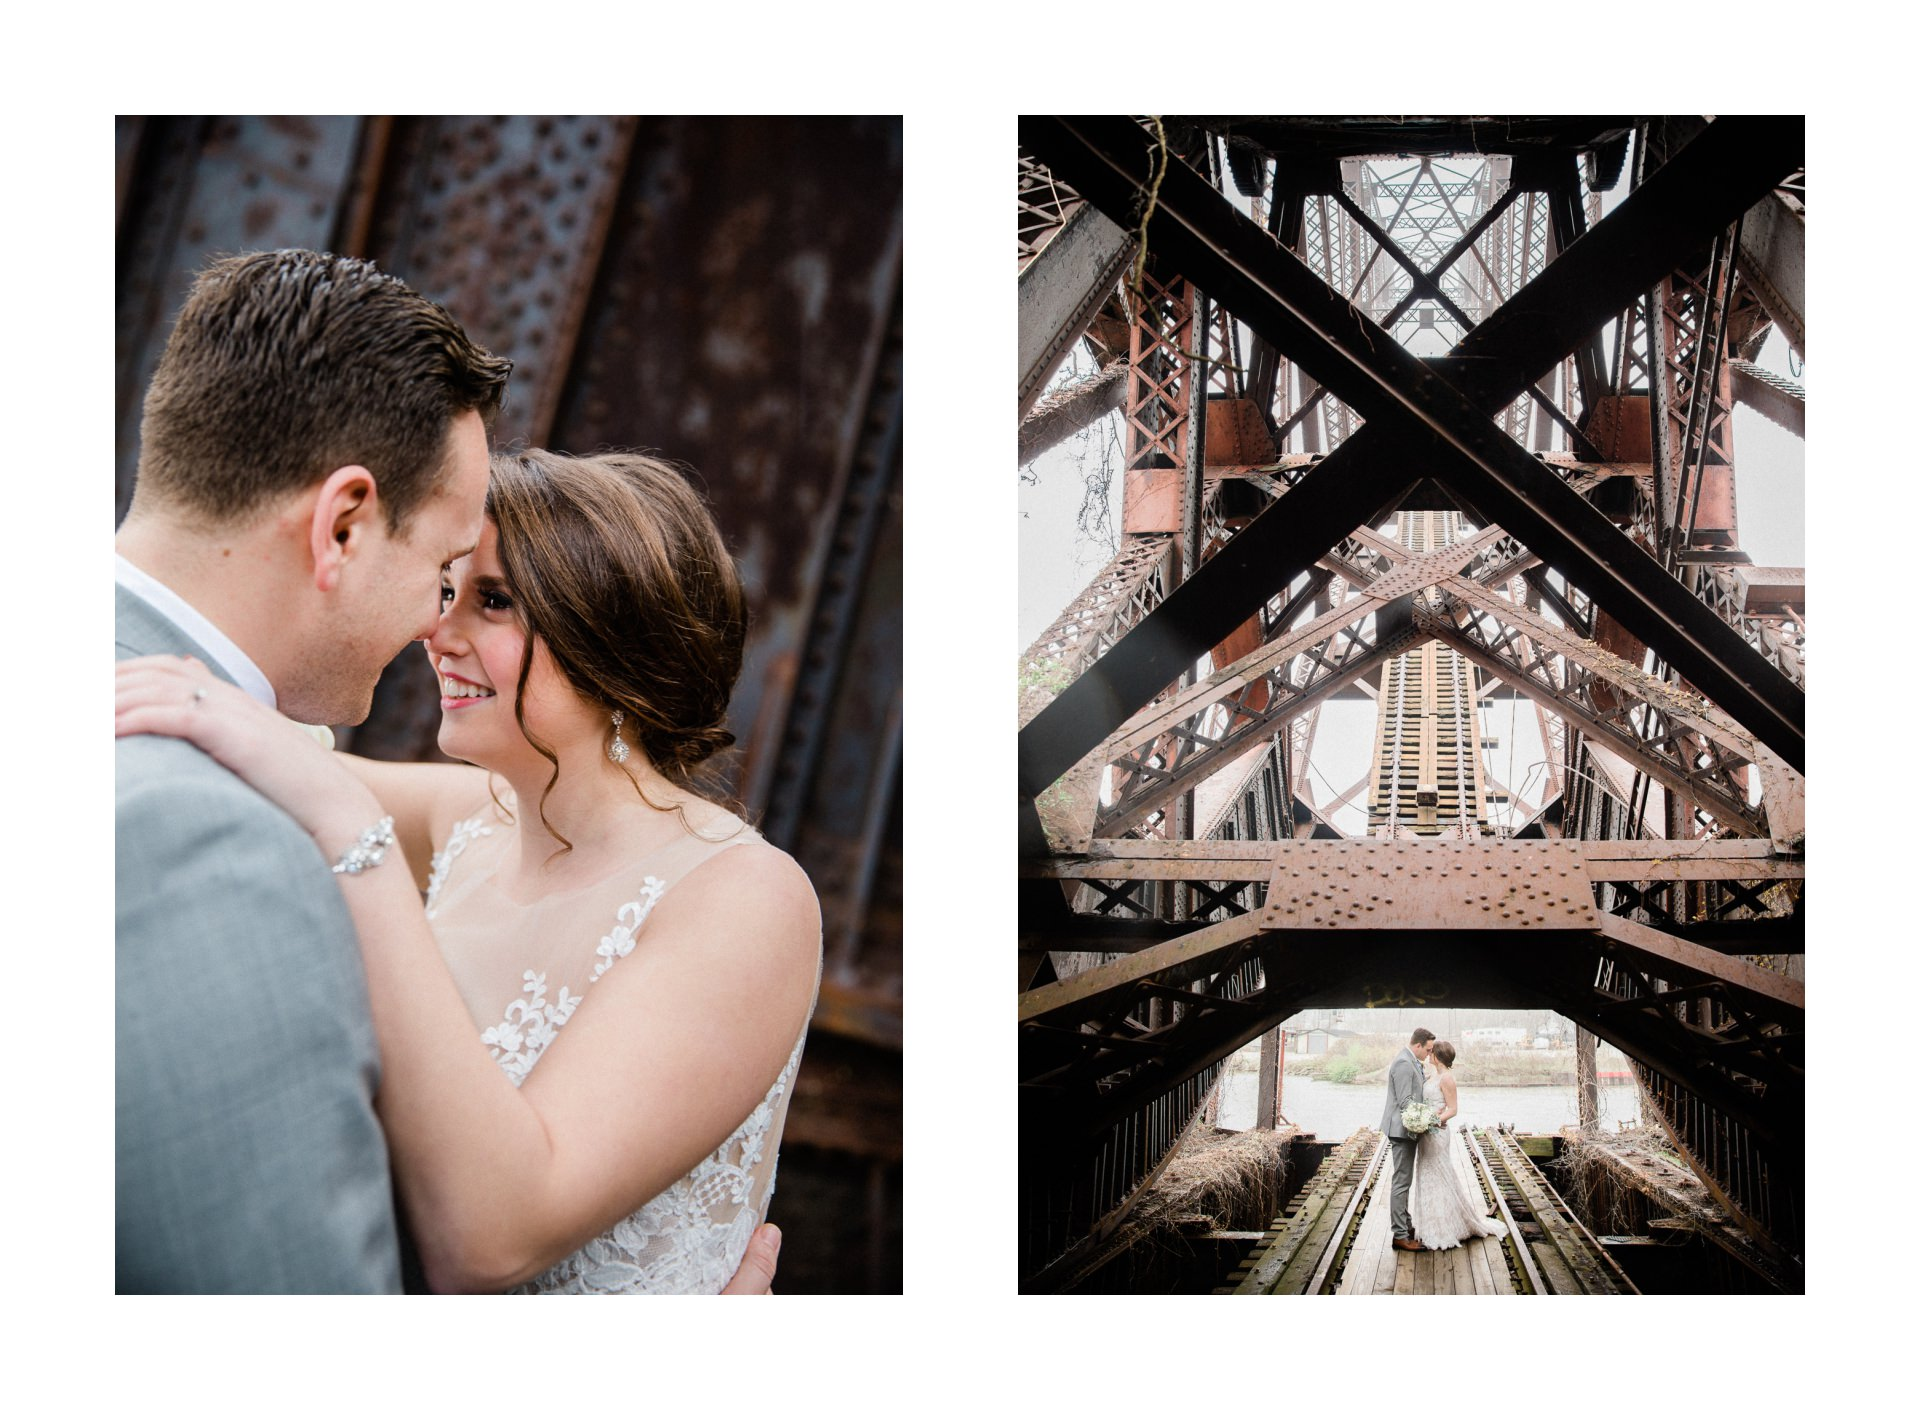 Windows on the River Cleveland Wedding Photographer 1 47.jpg